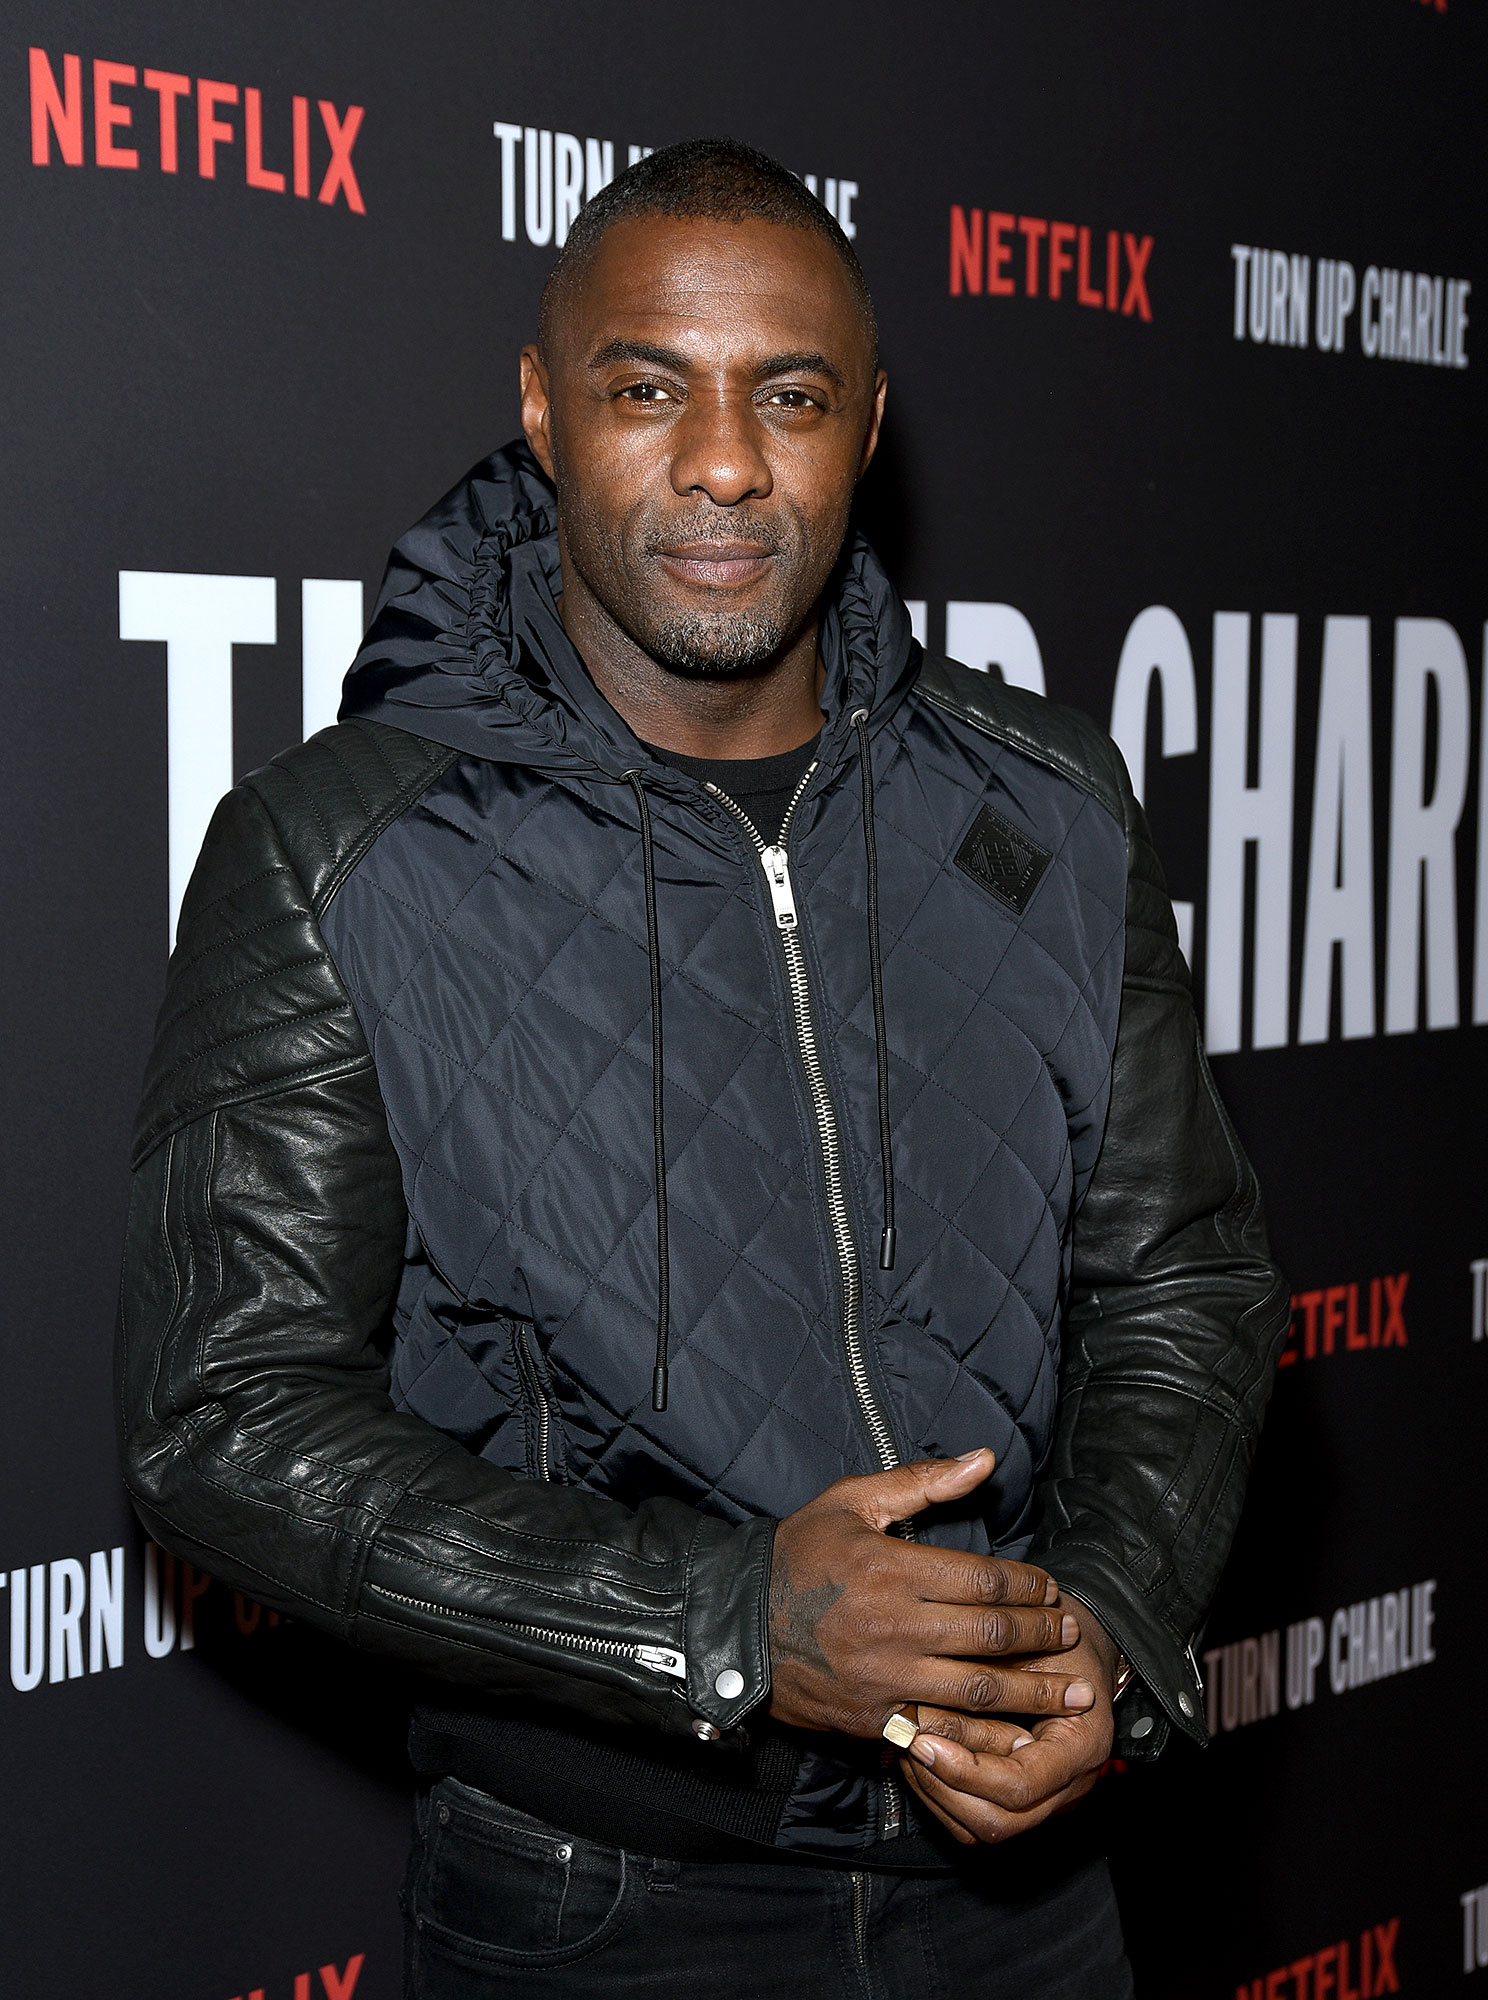 Idris Elba DJ Coachella - Idris Elba attends Netflix's 'Turn Up Charlie' Red Carpet and Reception at Pacific Design Center on March 02, 2019 in West Hollywood, California.